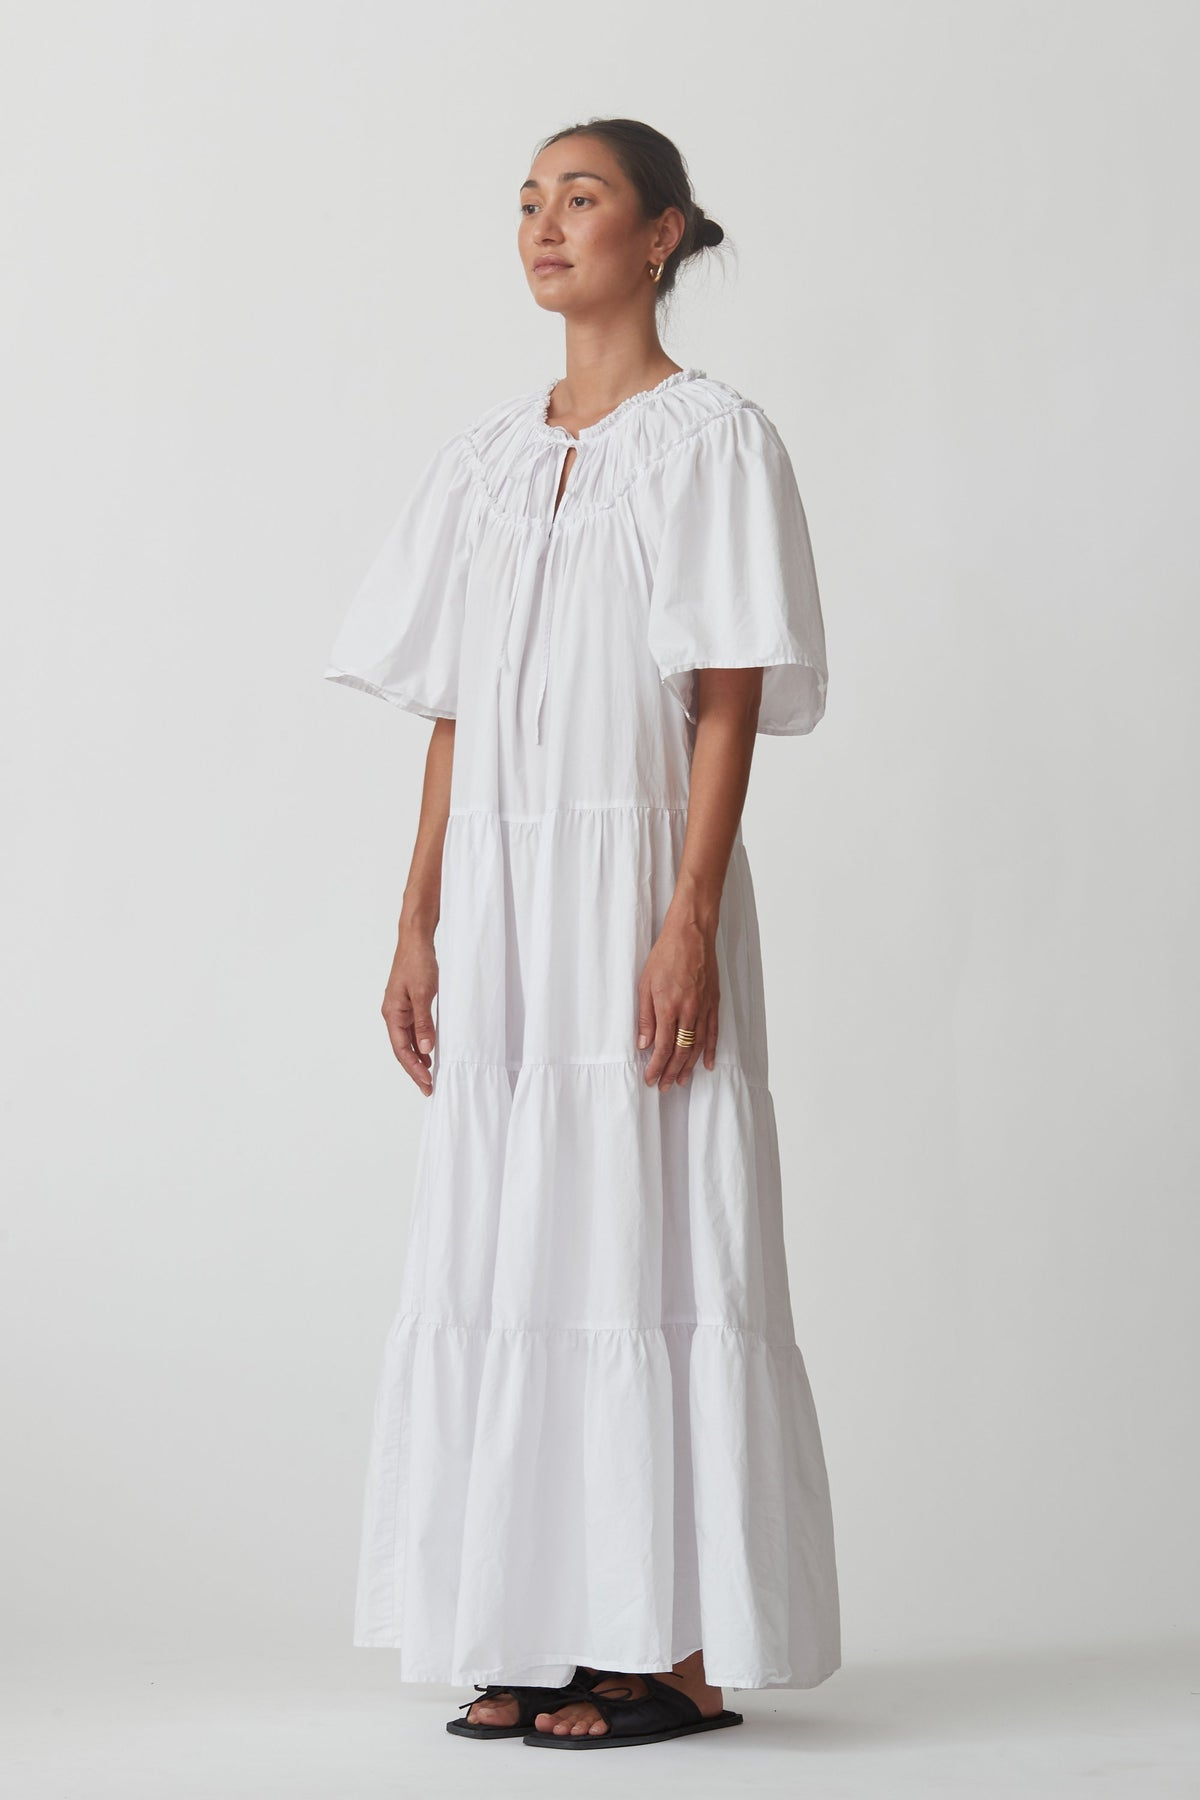 Blanca Sally Dress // White